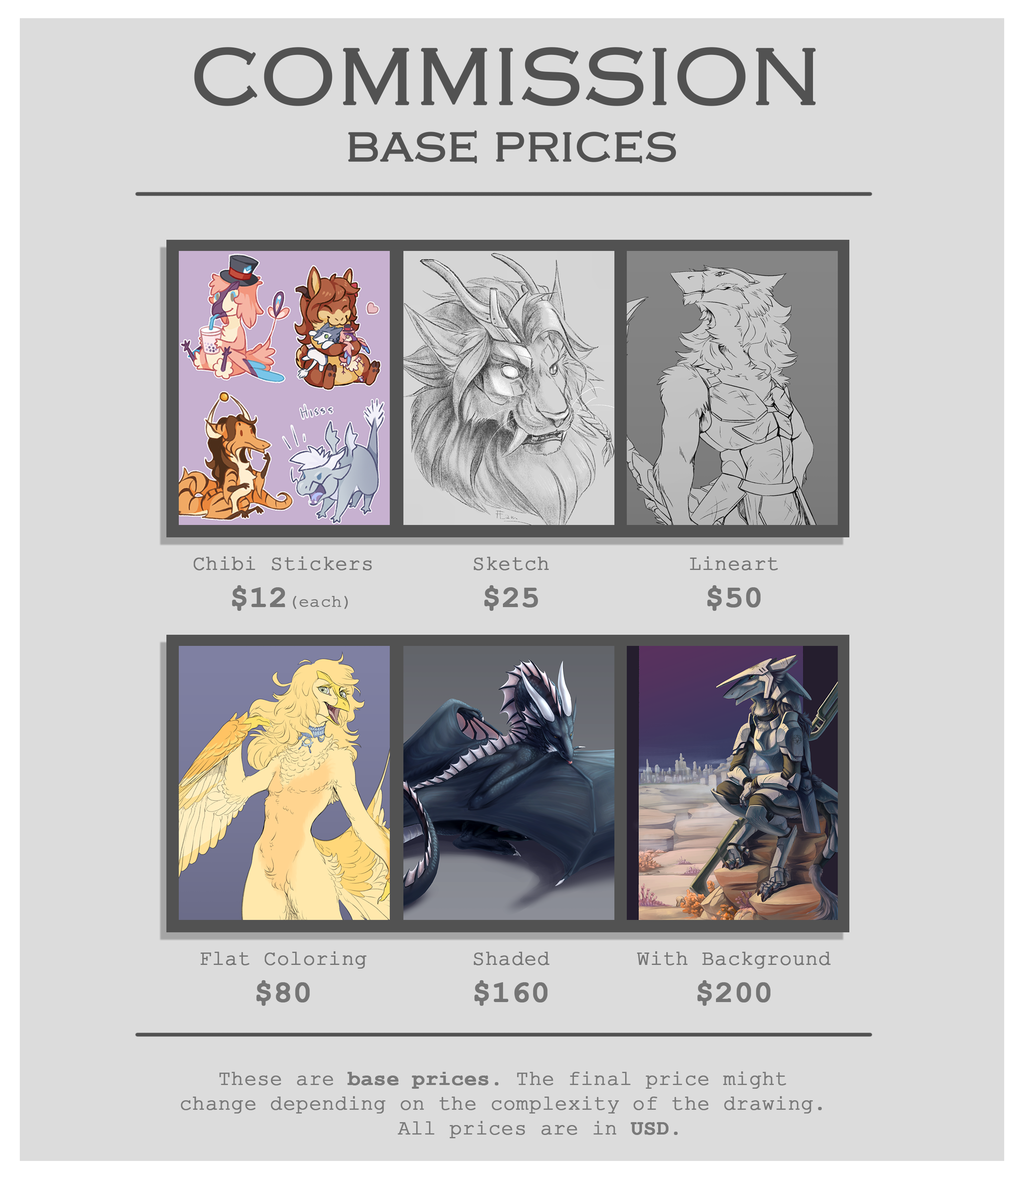 Most recent image: 2019 Commission Prices